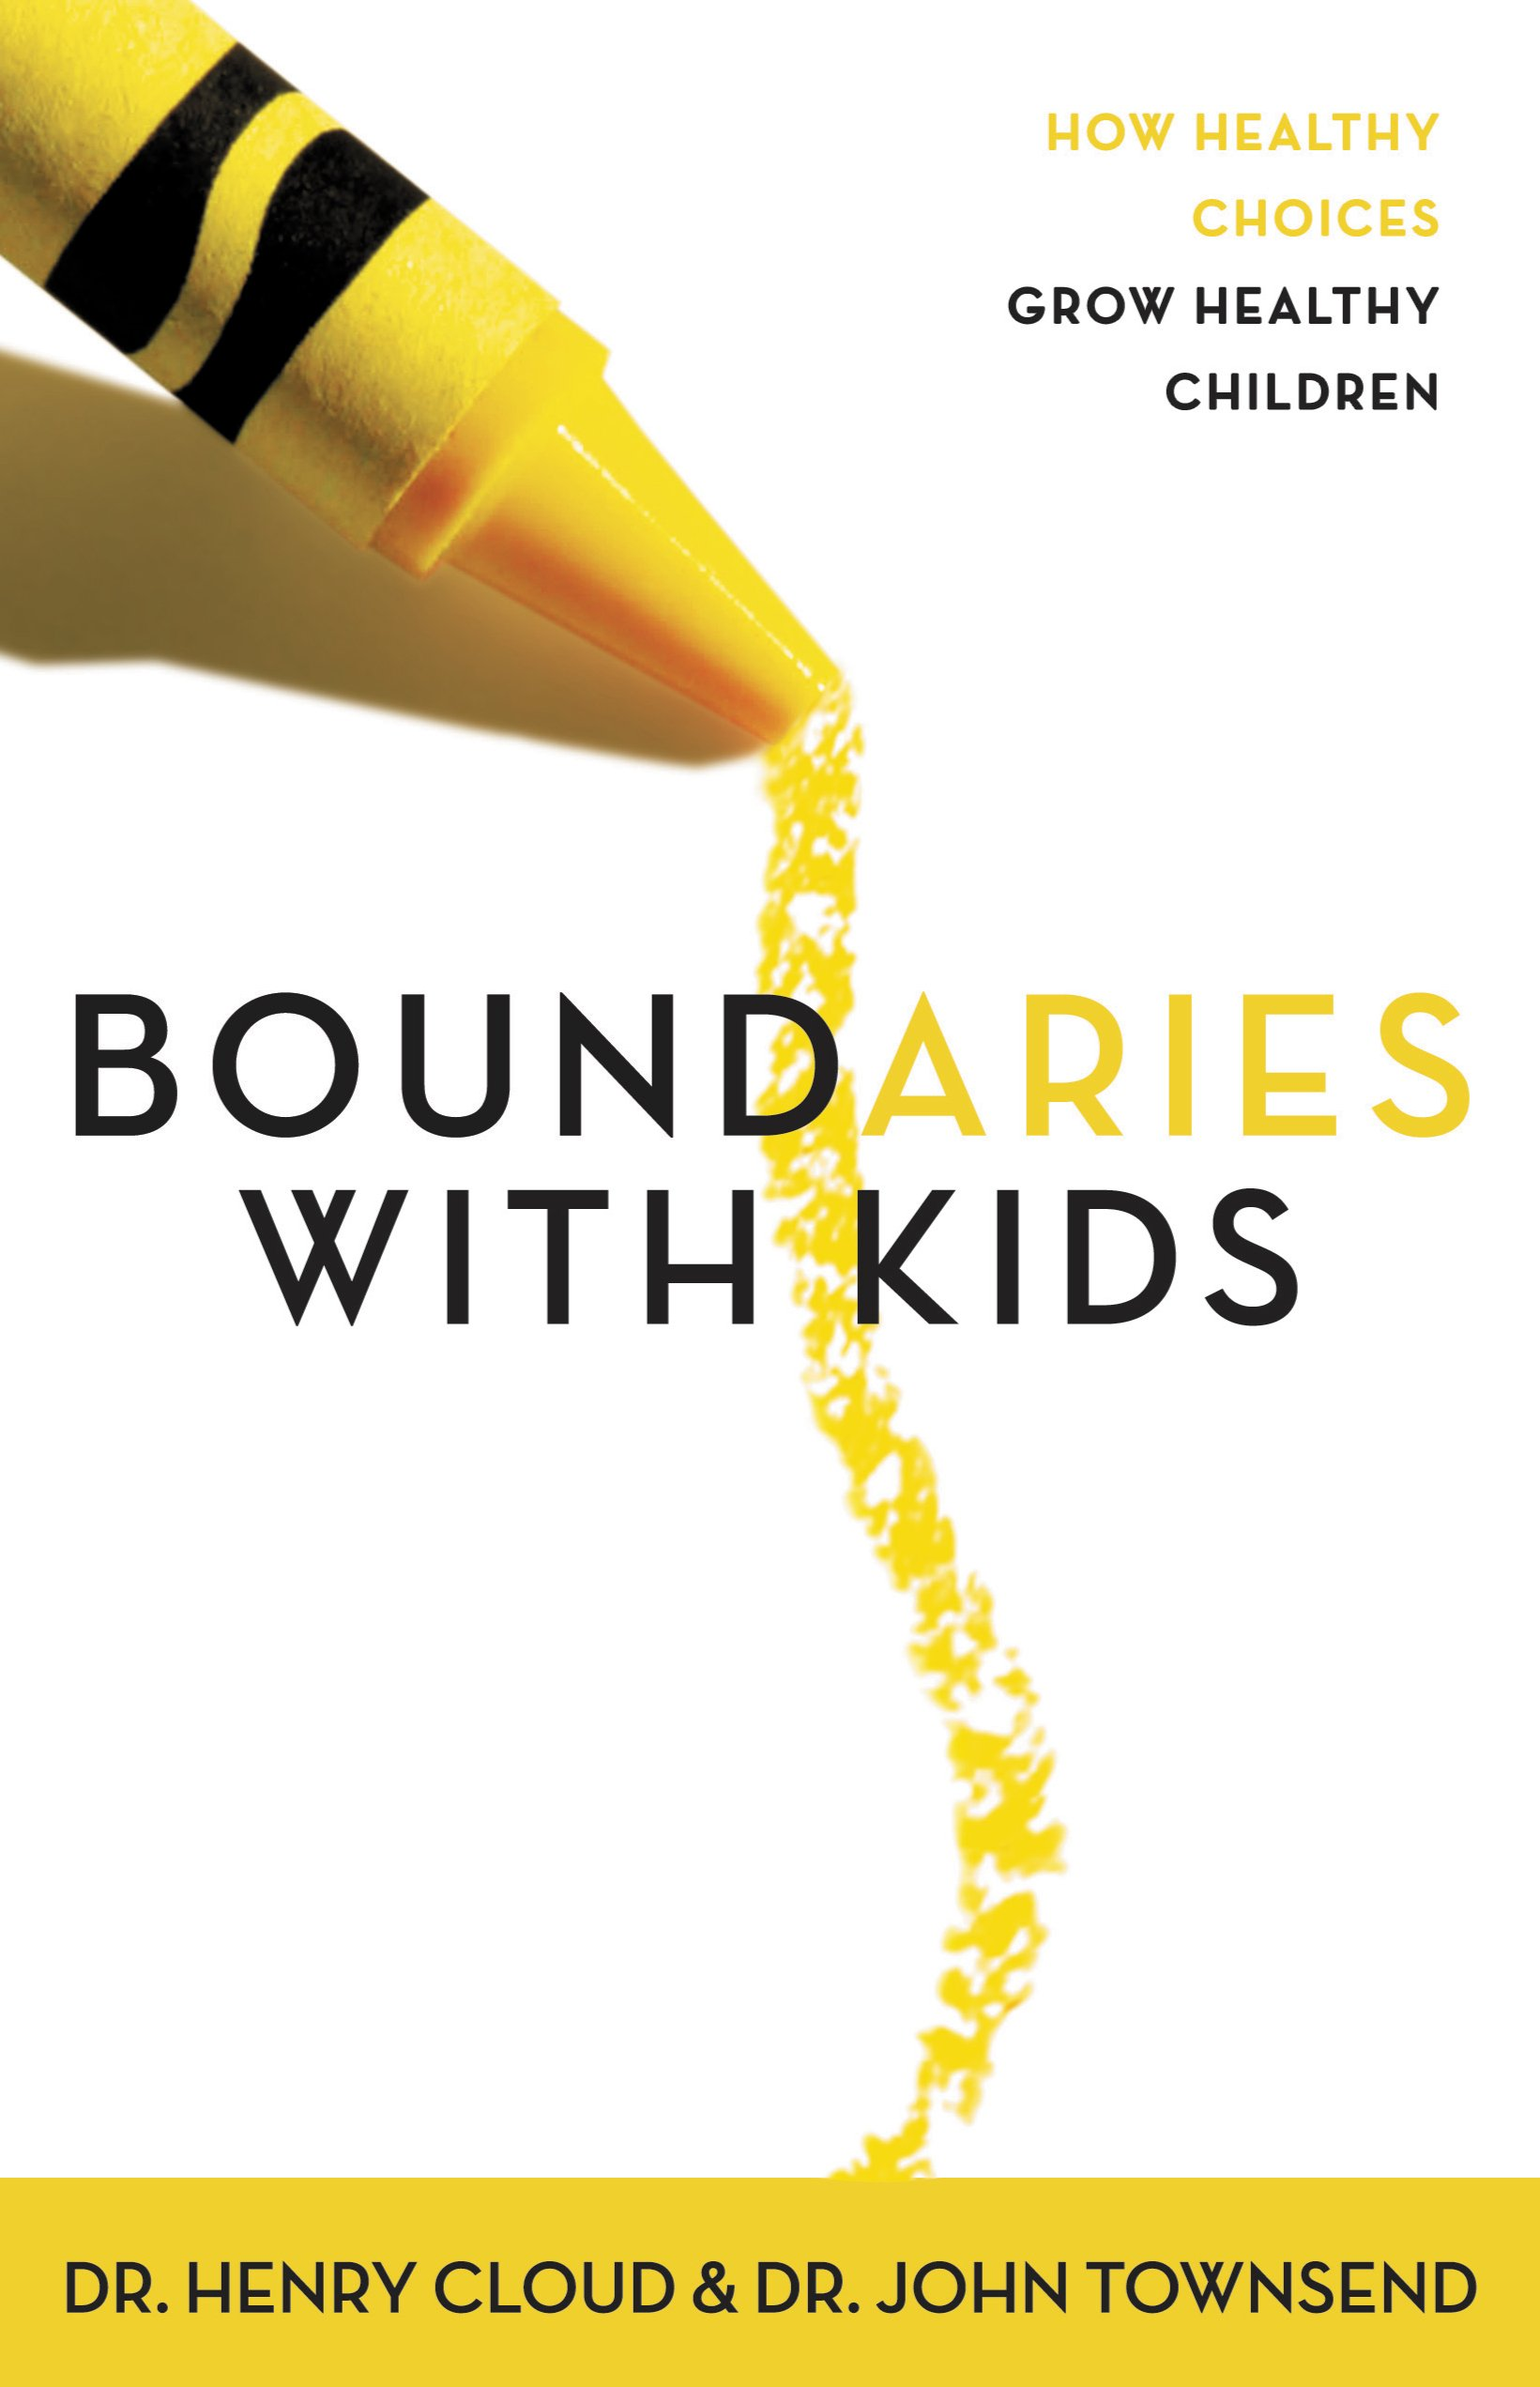 picture of book titled boundaries with kids